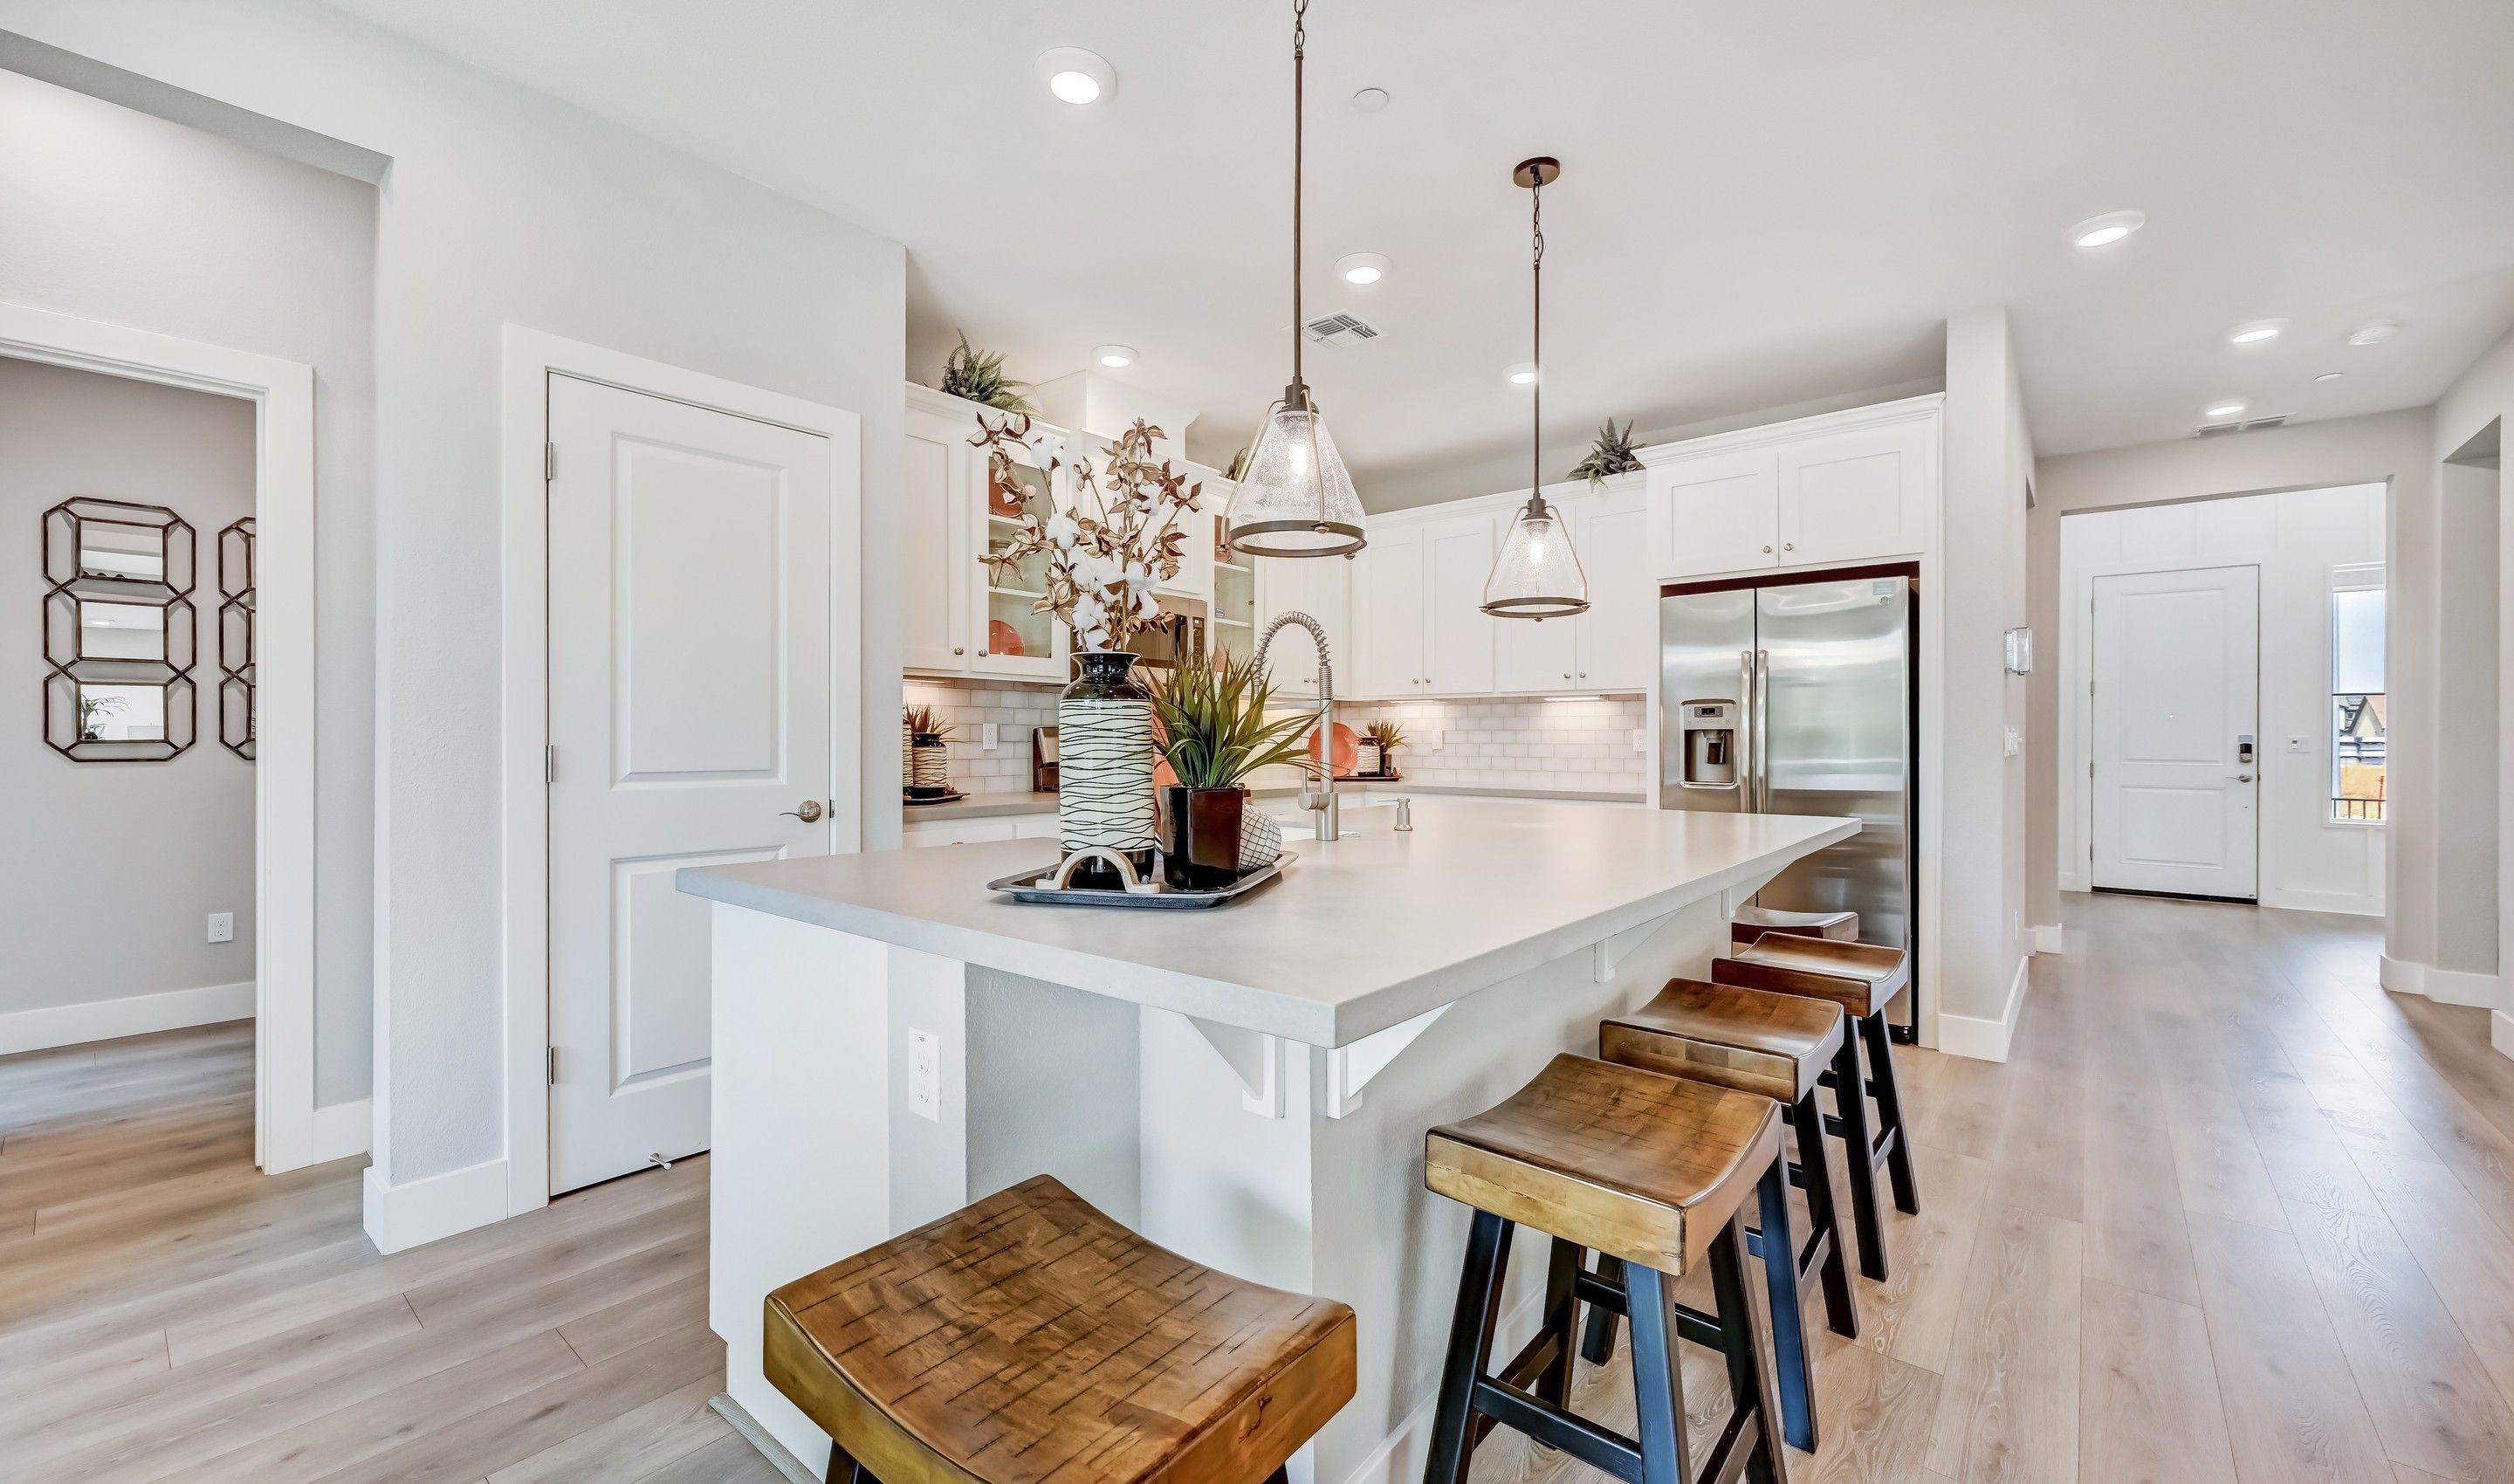 Kitchen featured in the Sherry By K. Hovnanian® Homes in Stockton-Lodi, CA